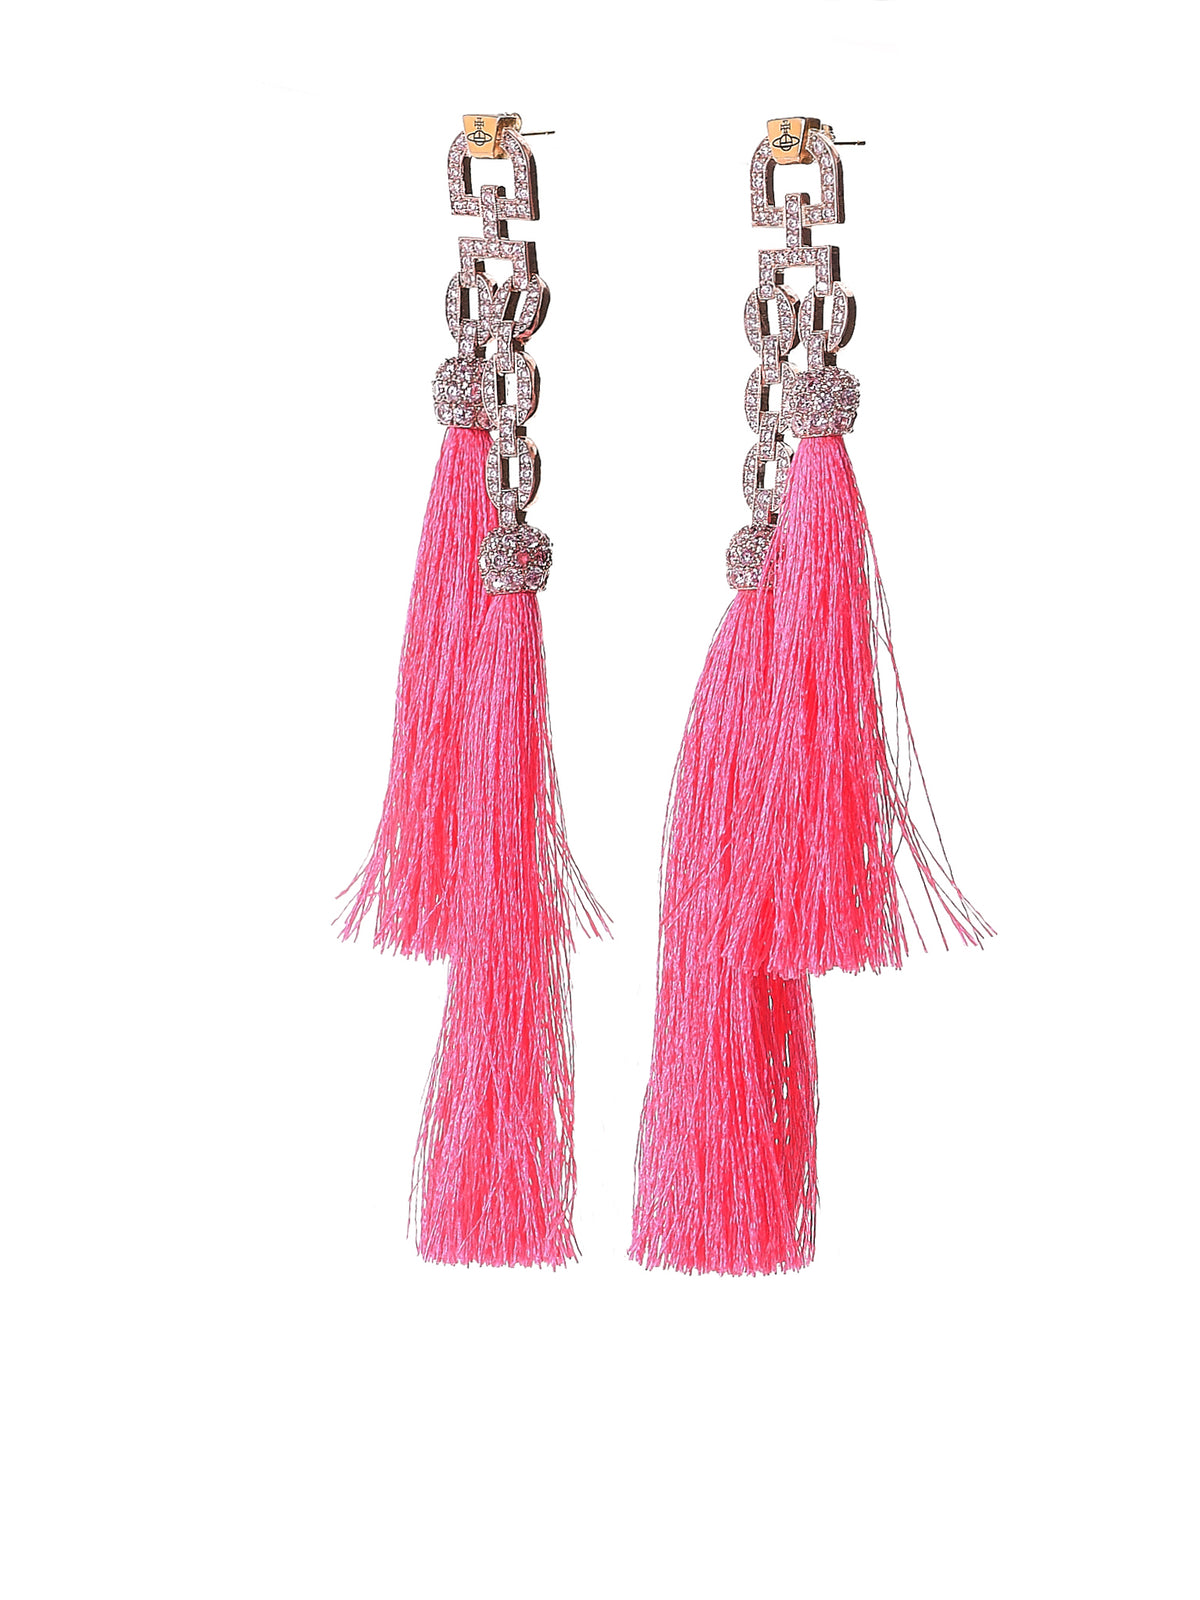 Tasseled Earrings (BE1297-2-ELECTRA-SMALL-PNK)